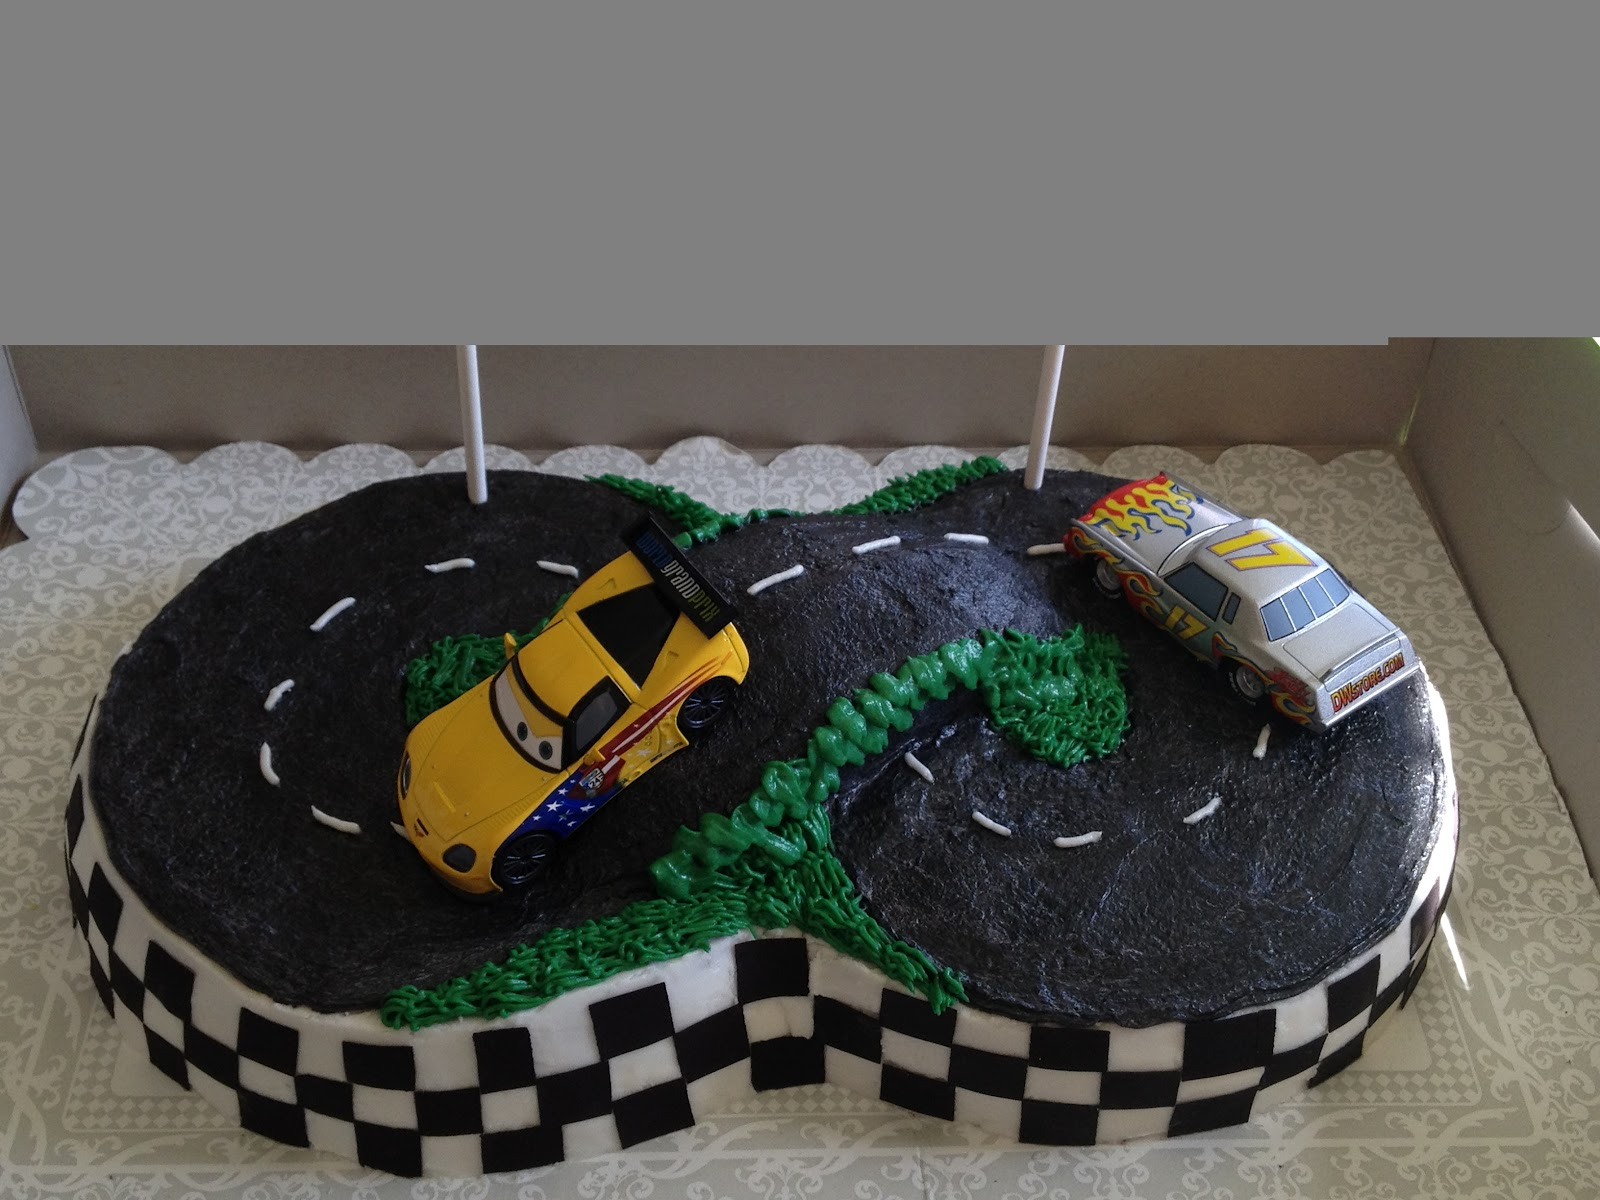 Custom Party Themes: Let's Go Racing!!!